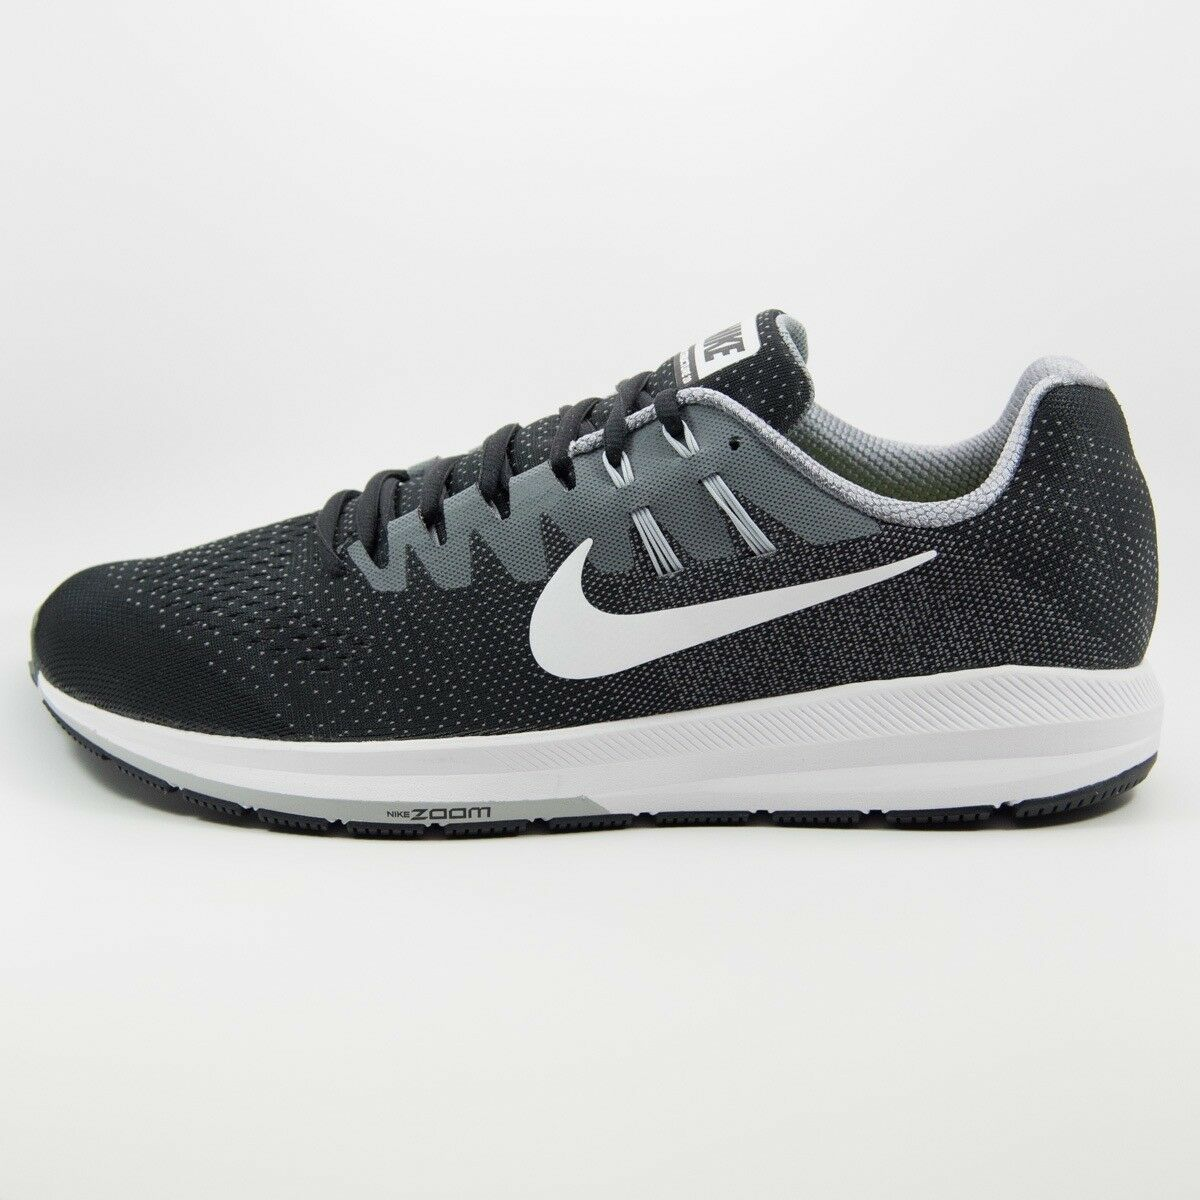 110 ZOOM homme NIKE ZOOM 110 AIR STRUCTURE 20 Taille 15 NEW 849576 003 ffb619